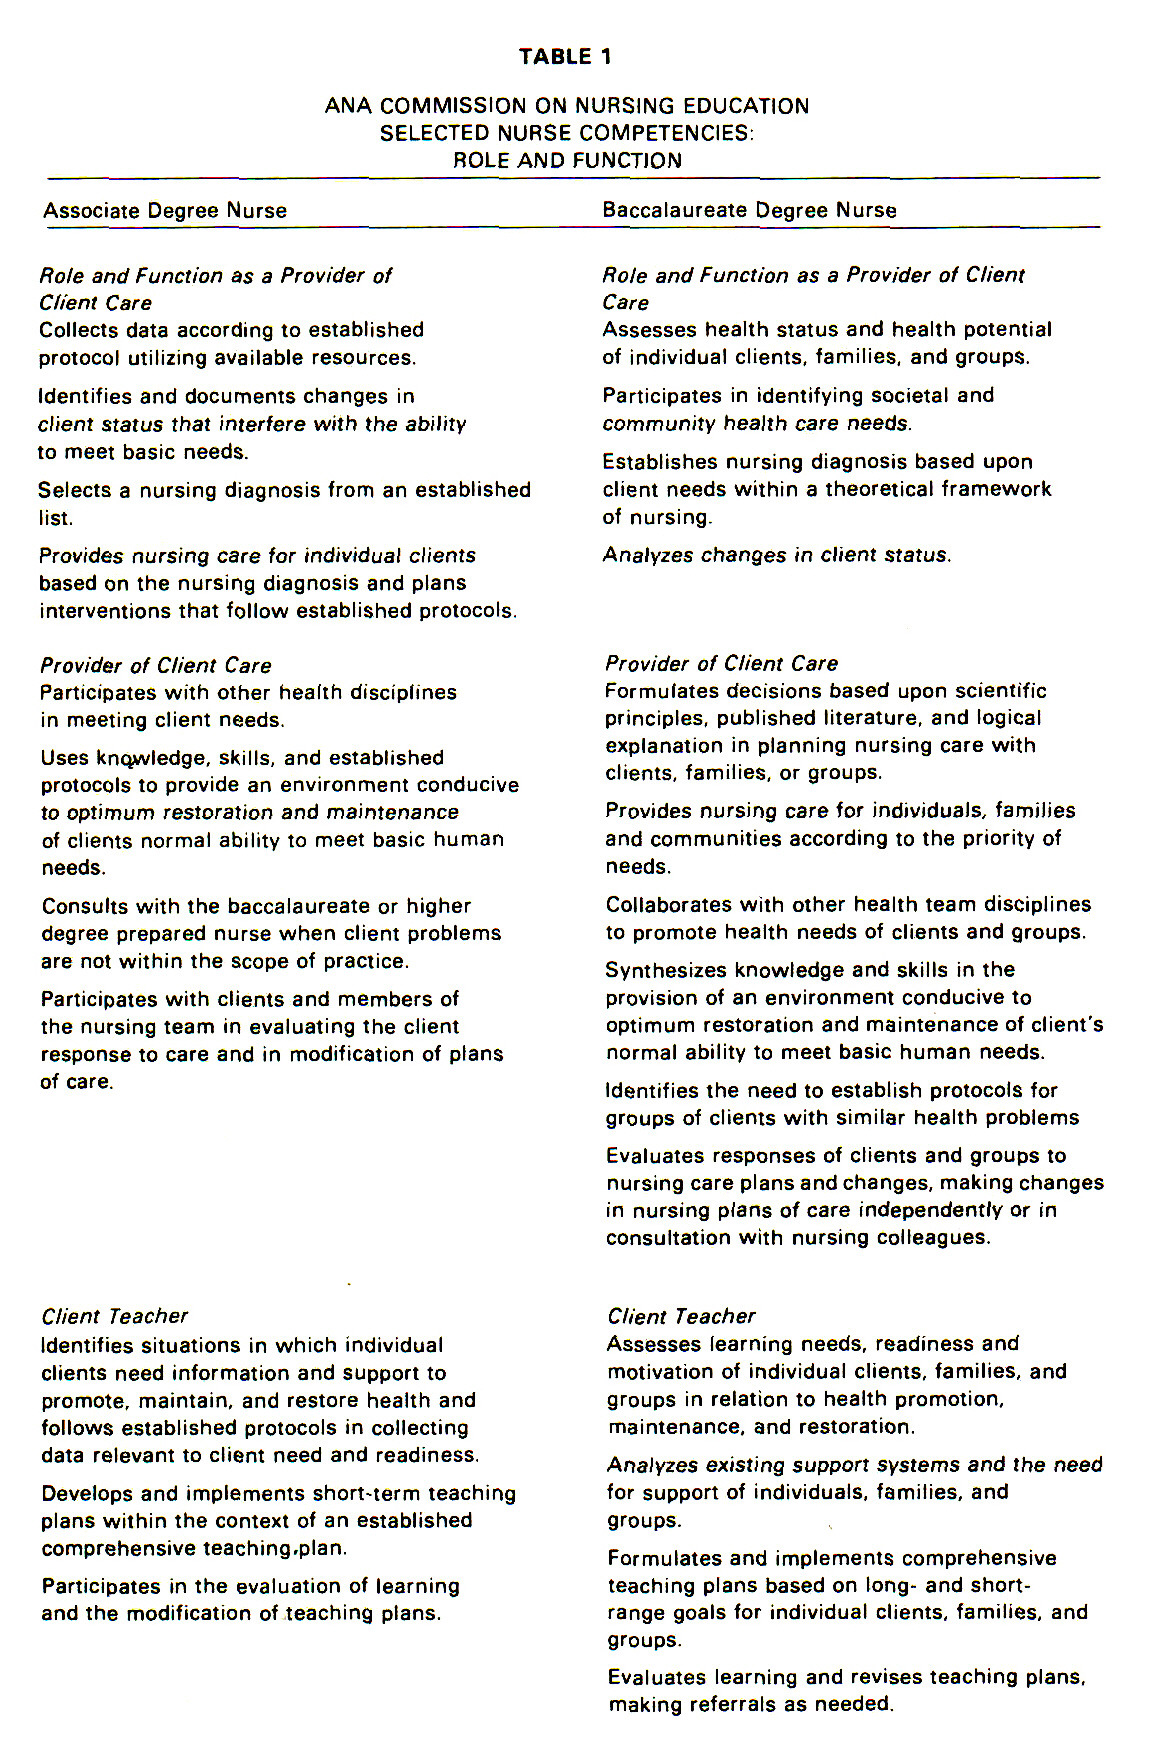 differences in competencies between associate degree and baccalaureate degree nurses essay